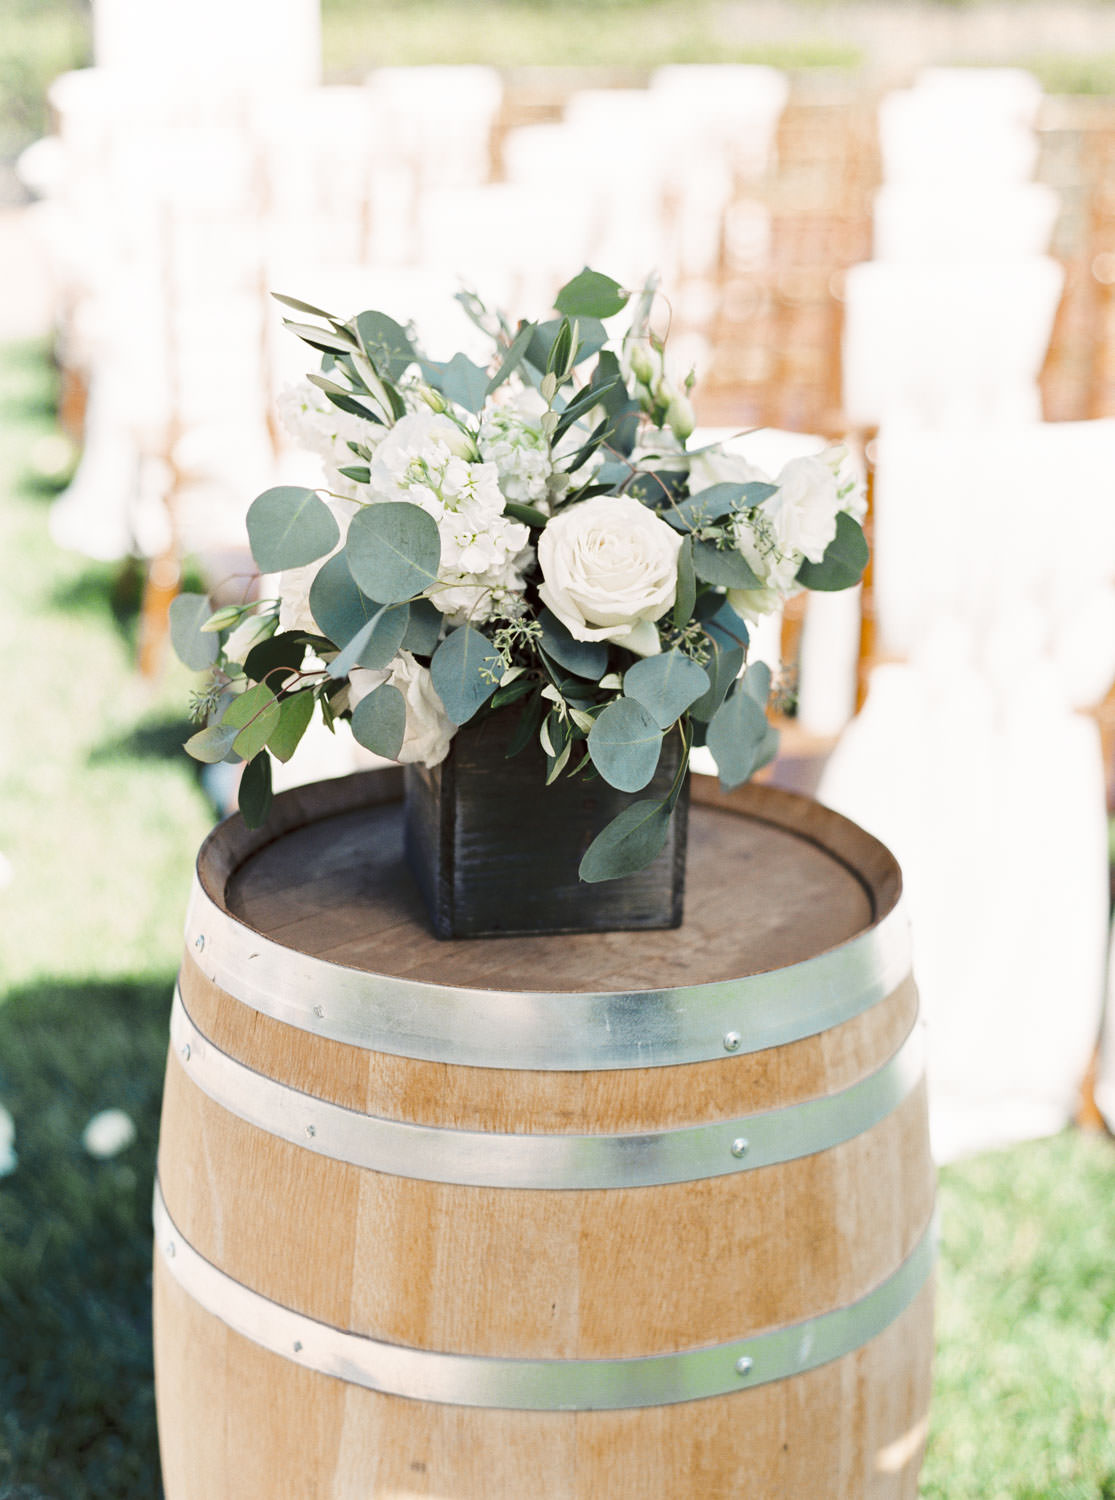 White and green centerpieces on a barrel for ceremony decorations, Cavin Elizabeth Photography